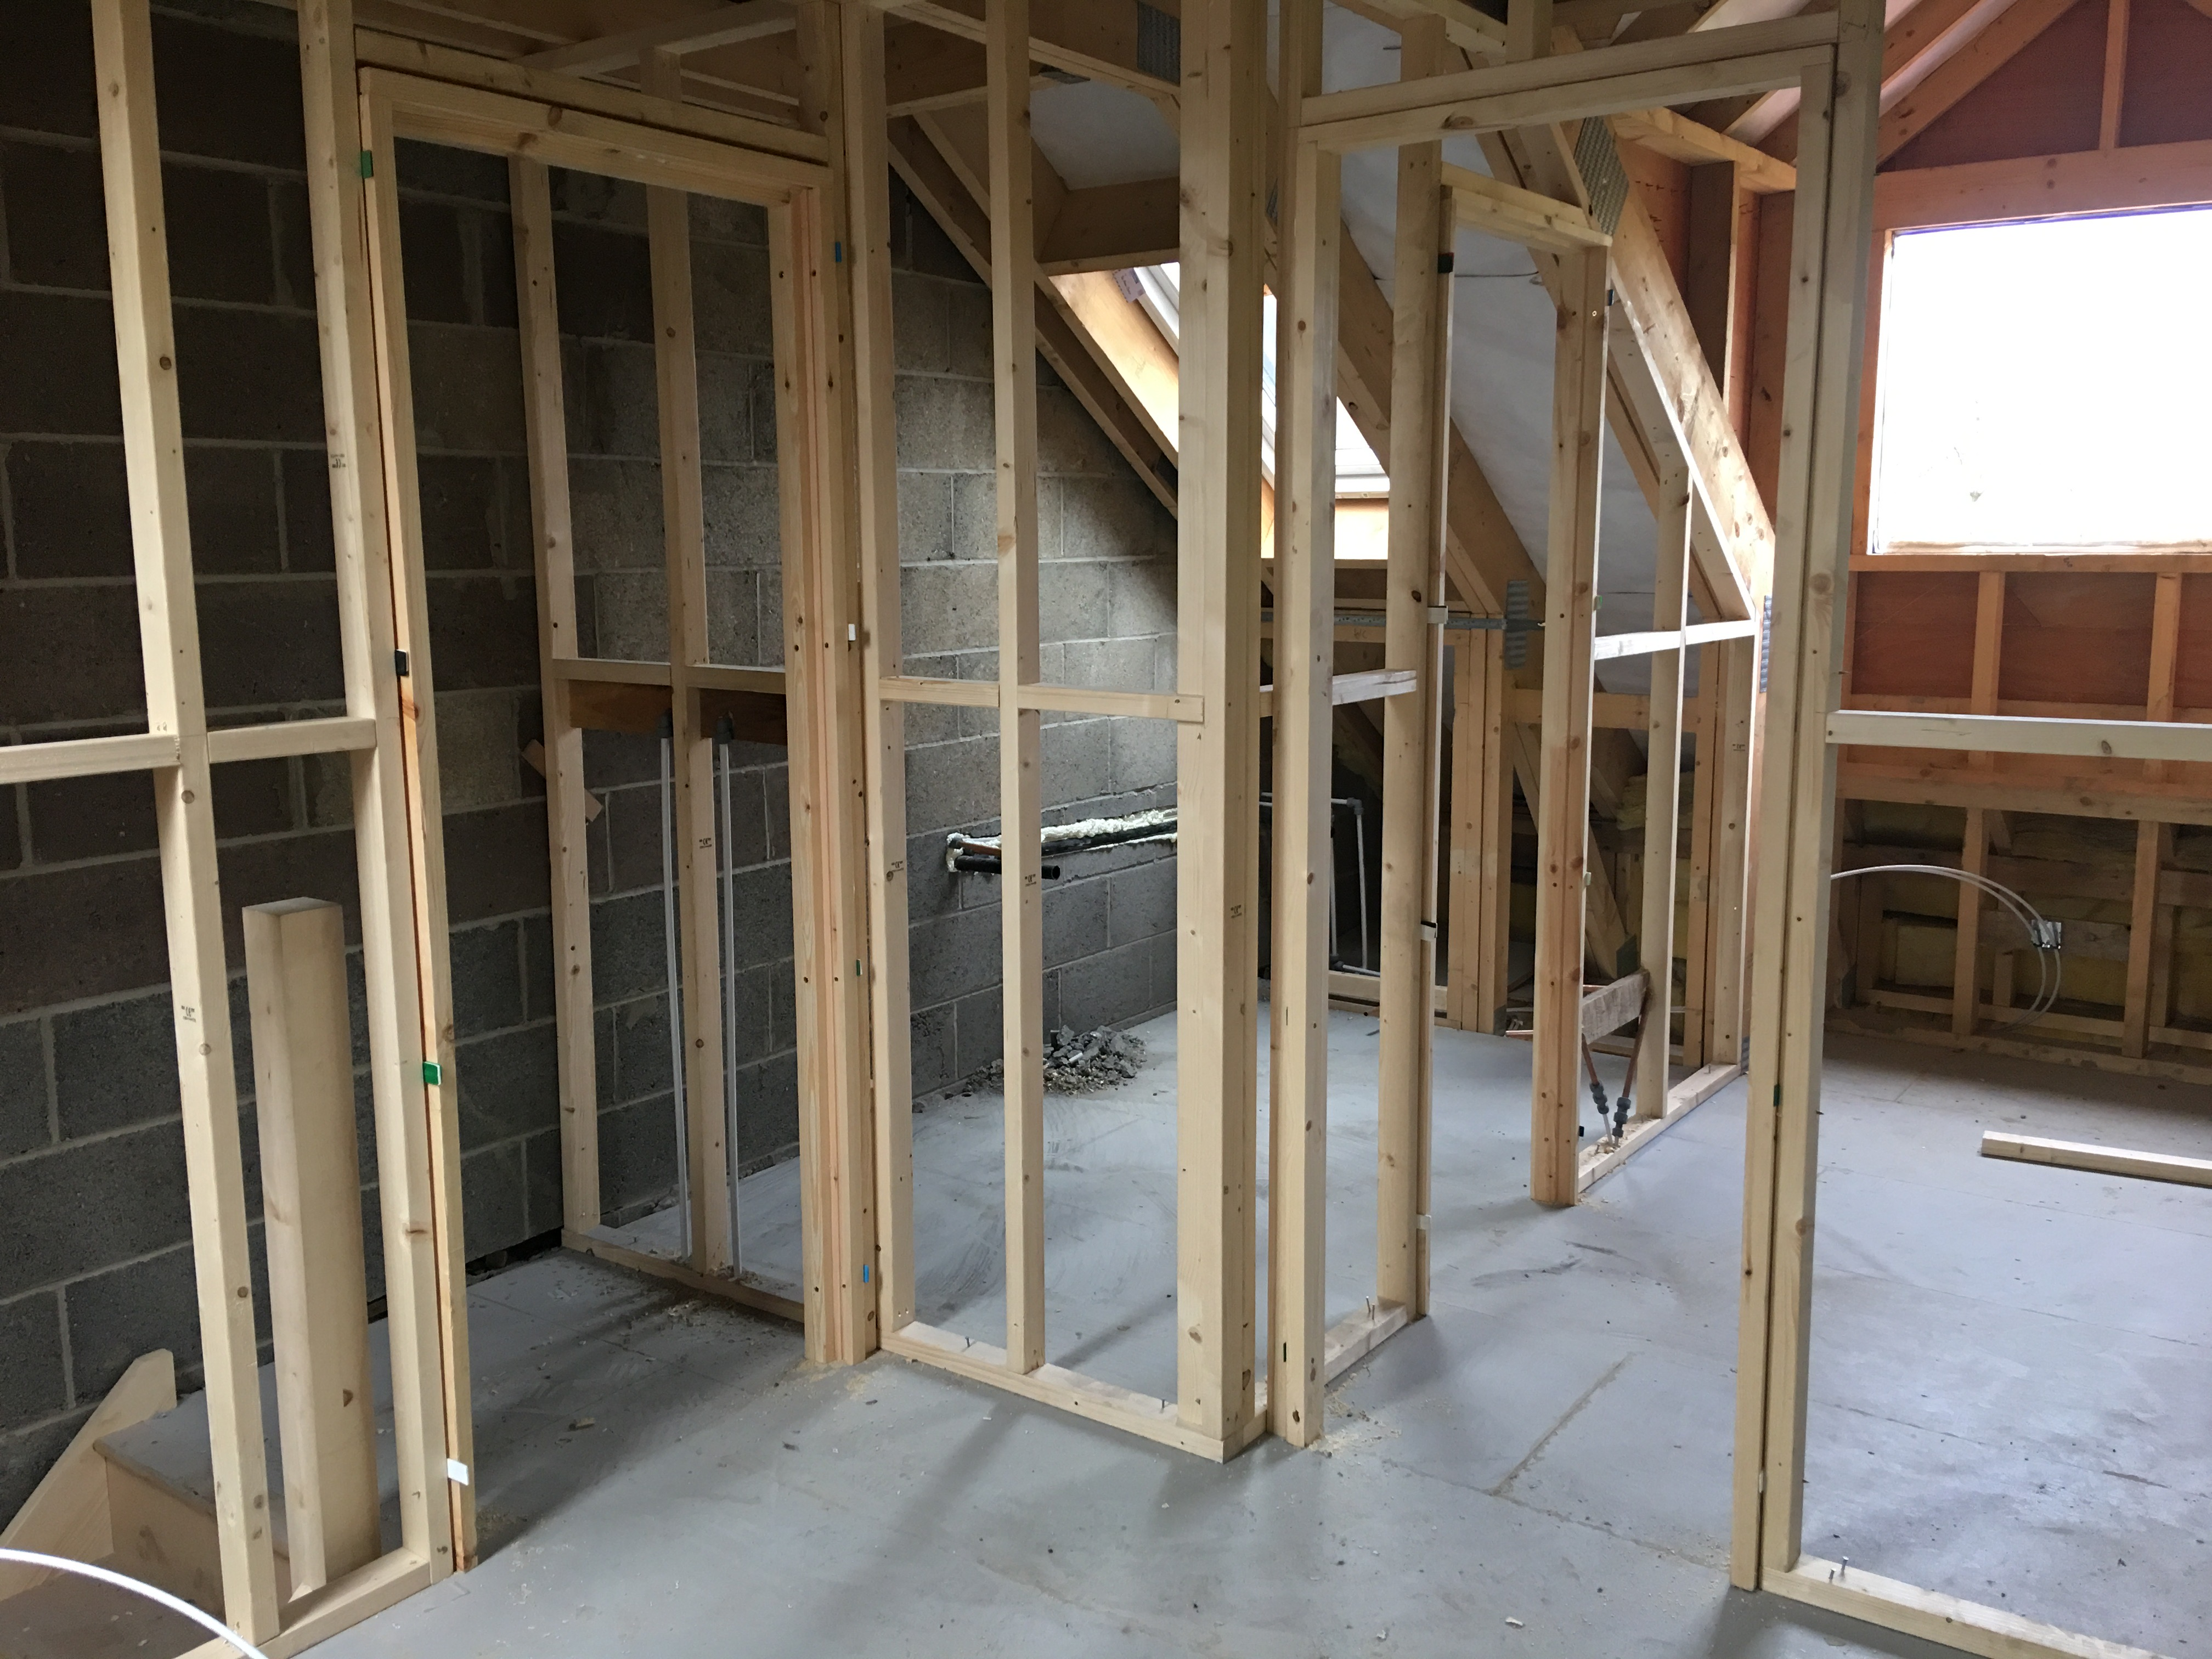 Stud wall partitioning